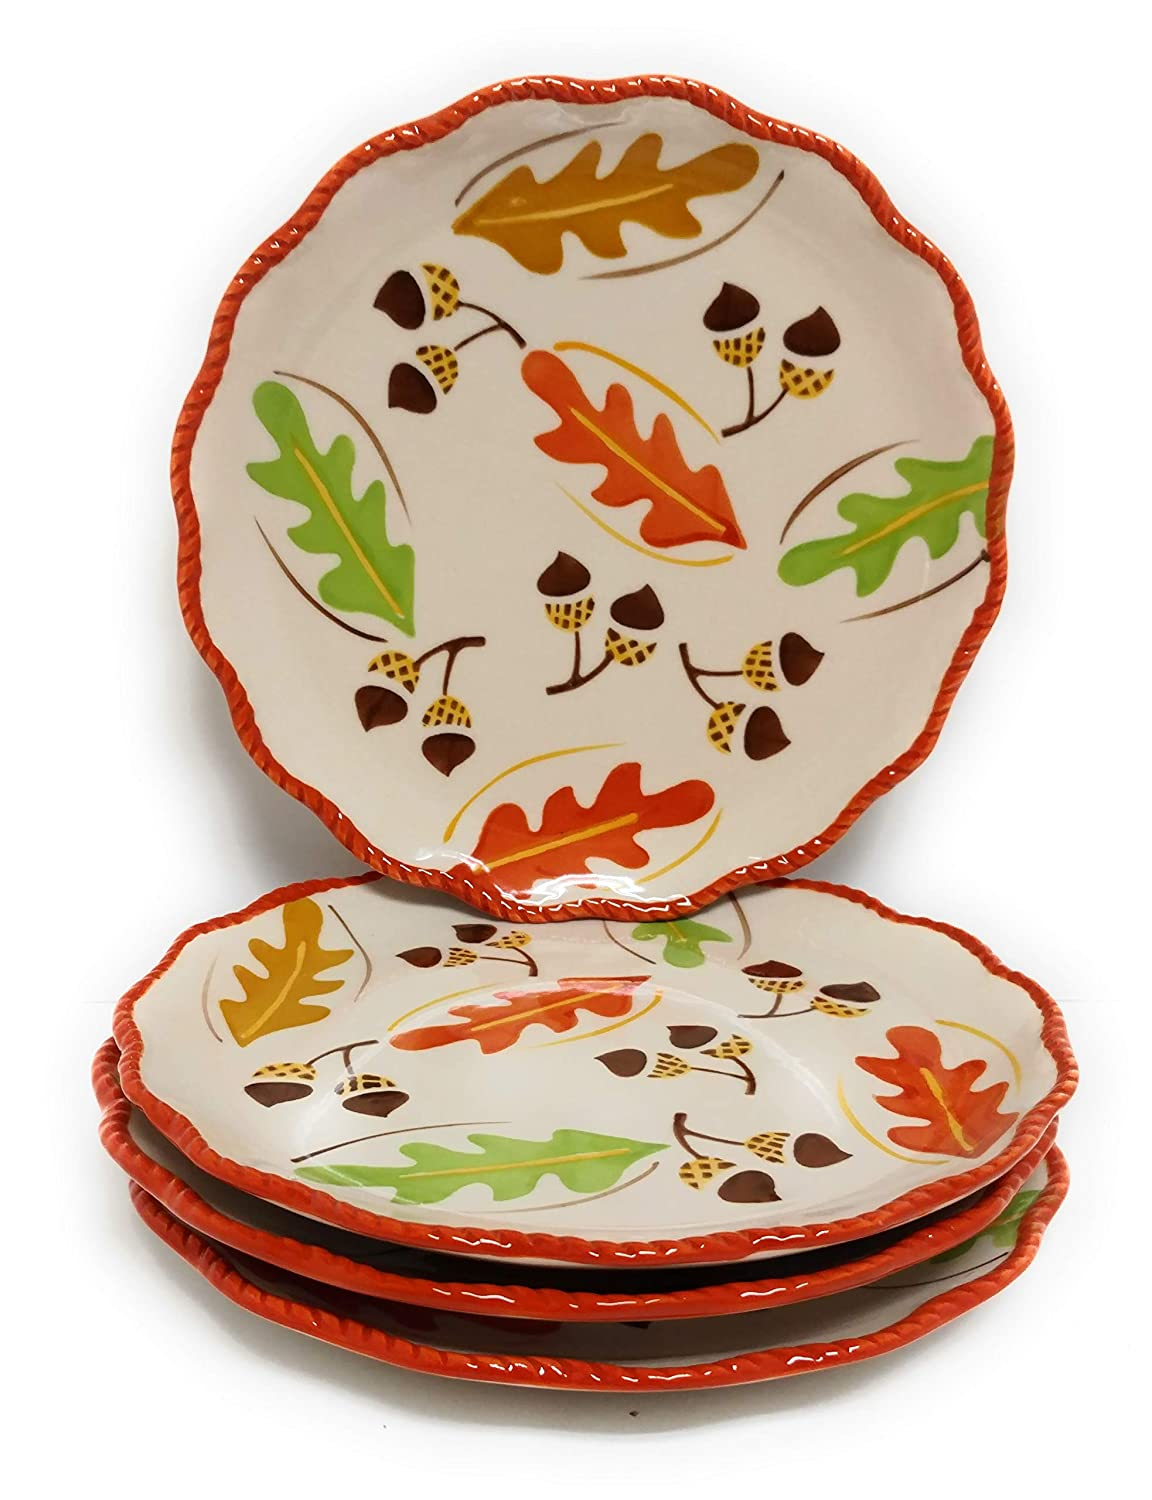 Temp-tations Set of 4 Hand Painted Stoneware Salad/Dessert Plate (Old World Harvest)